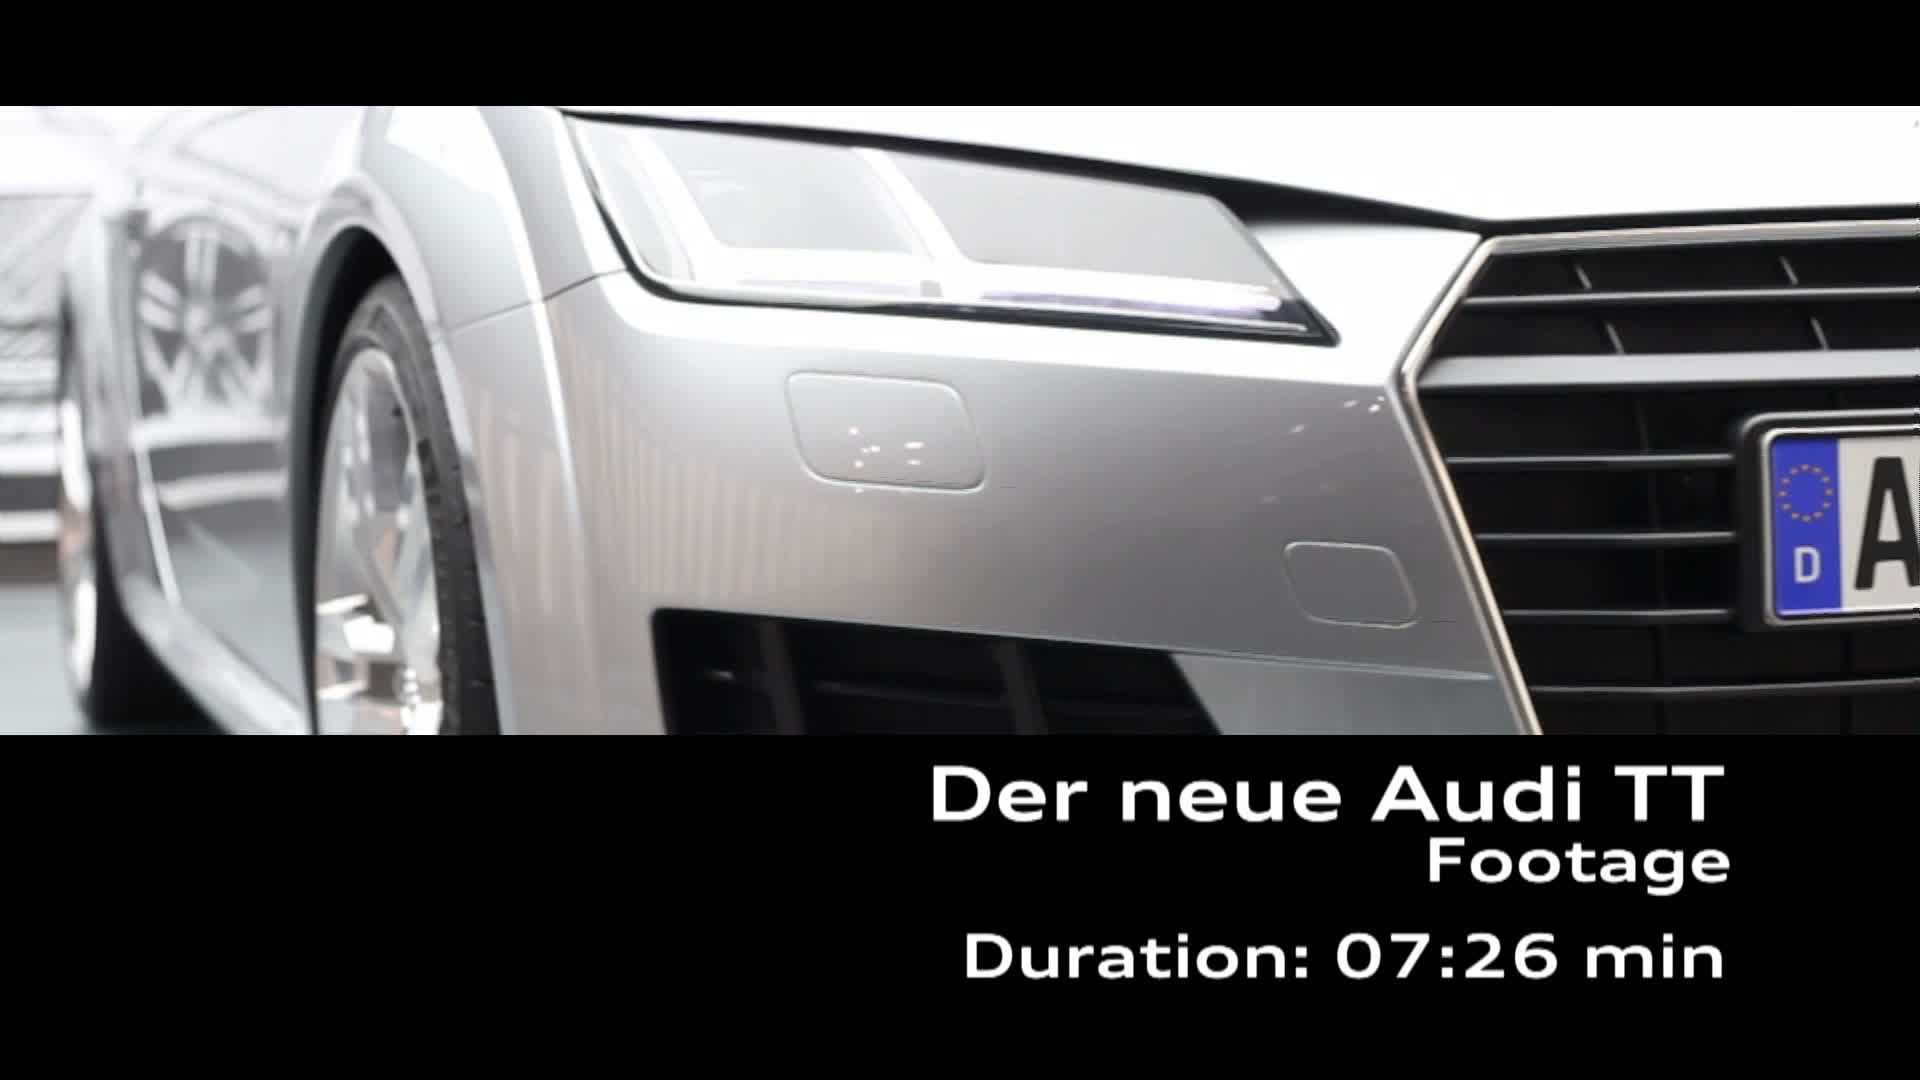 Audi TT Coupé und Audi TTS Coupé Design - Footage